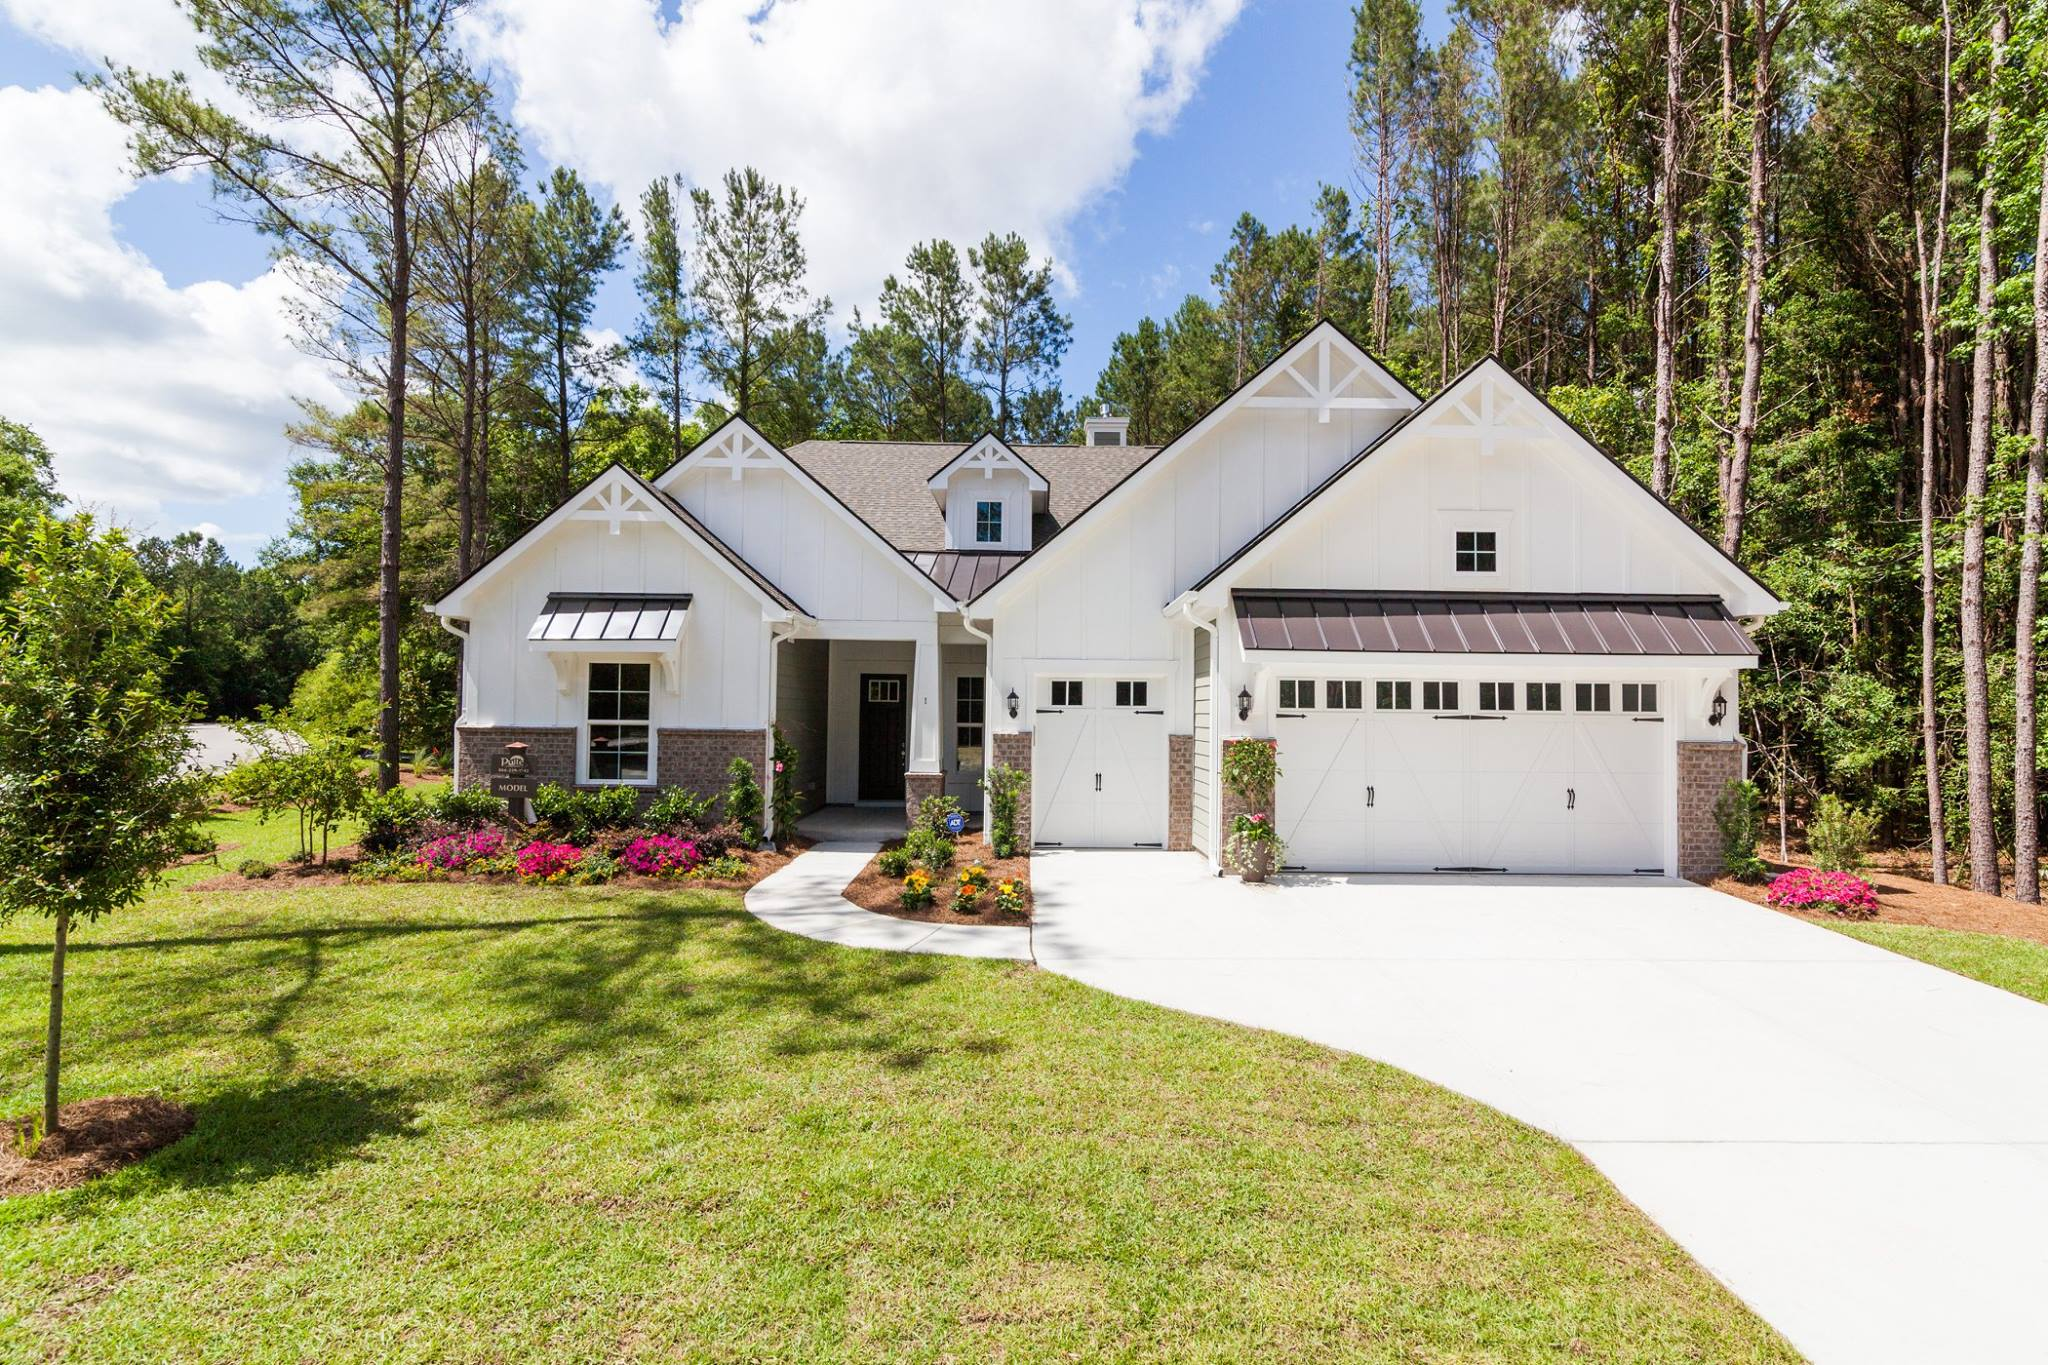 Pulte homes unveils life tested homes at hampton lake in for Builders in south carolina